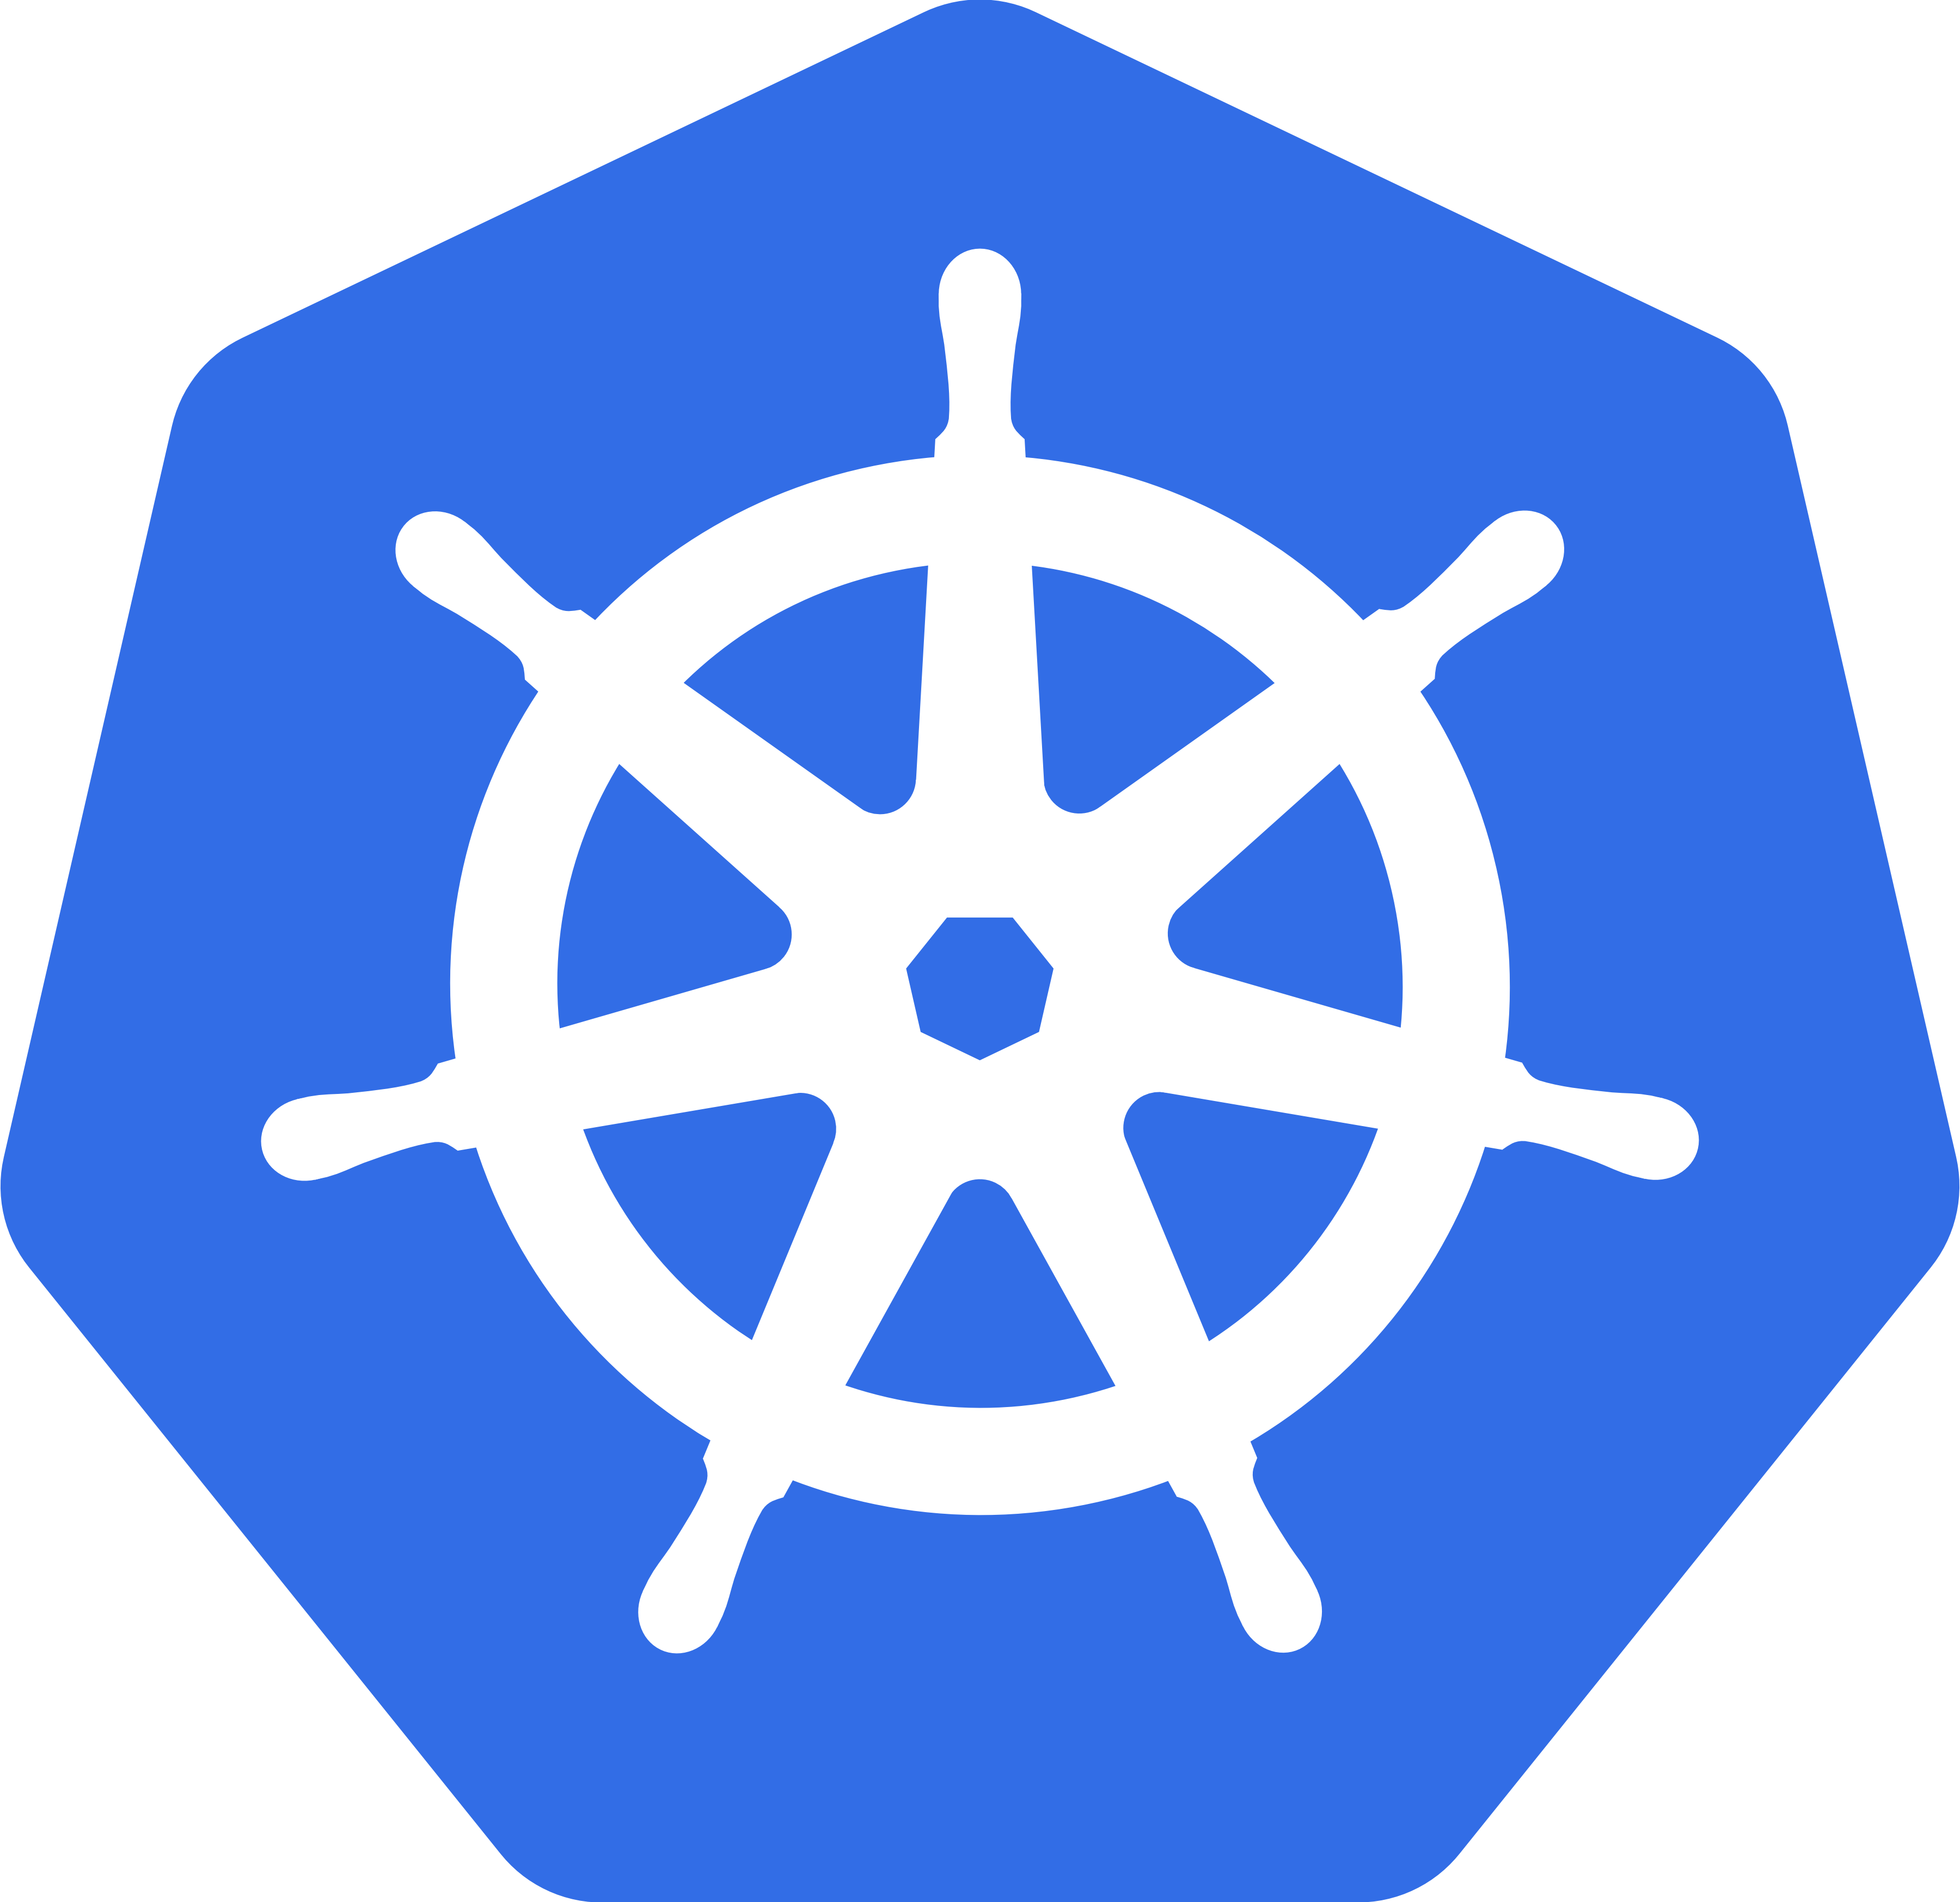 Kubernetes Png - File:Kubernetes (container engine).png - Wikimedia Commons